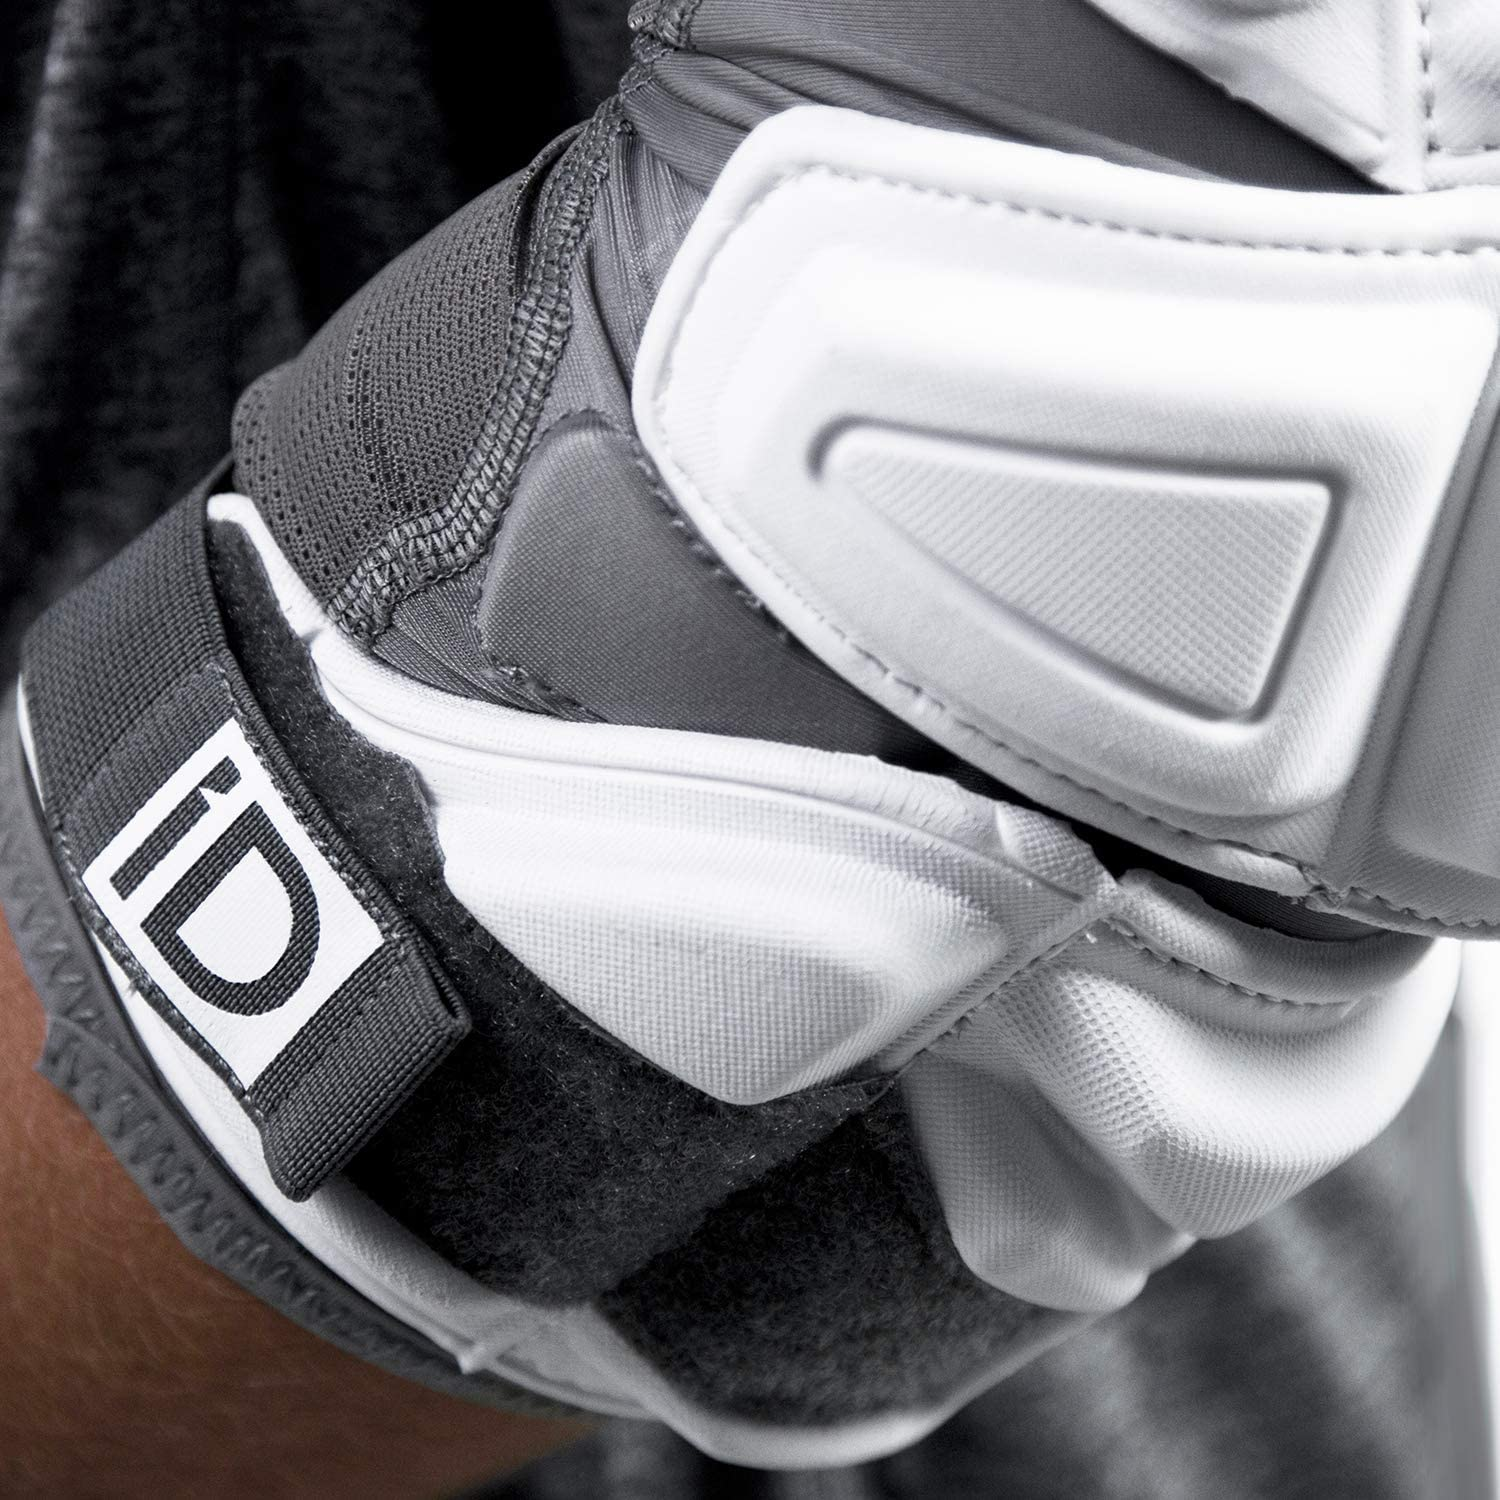 Epoch iD Lacrosse Arm Pads for Attack Middie and Defensemen